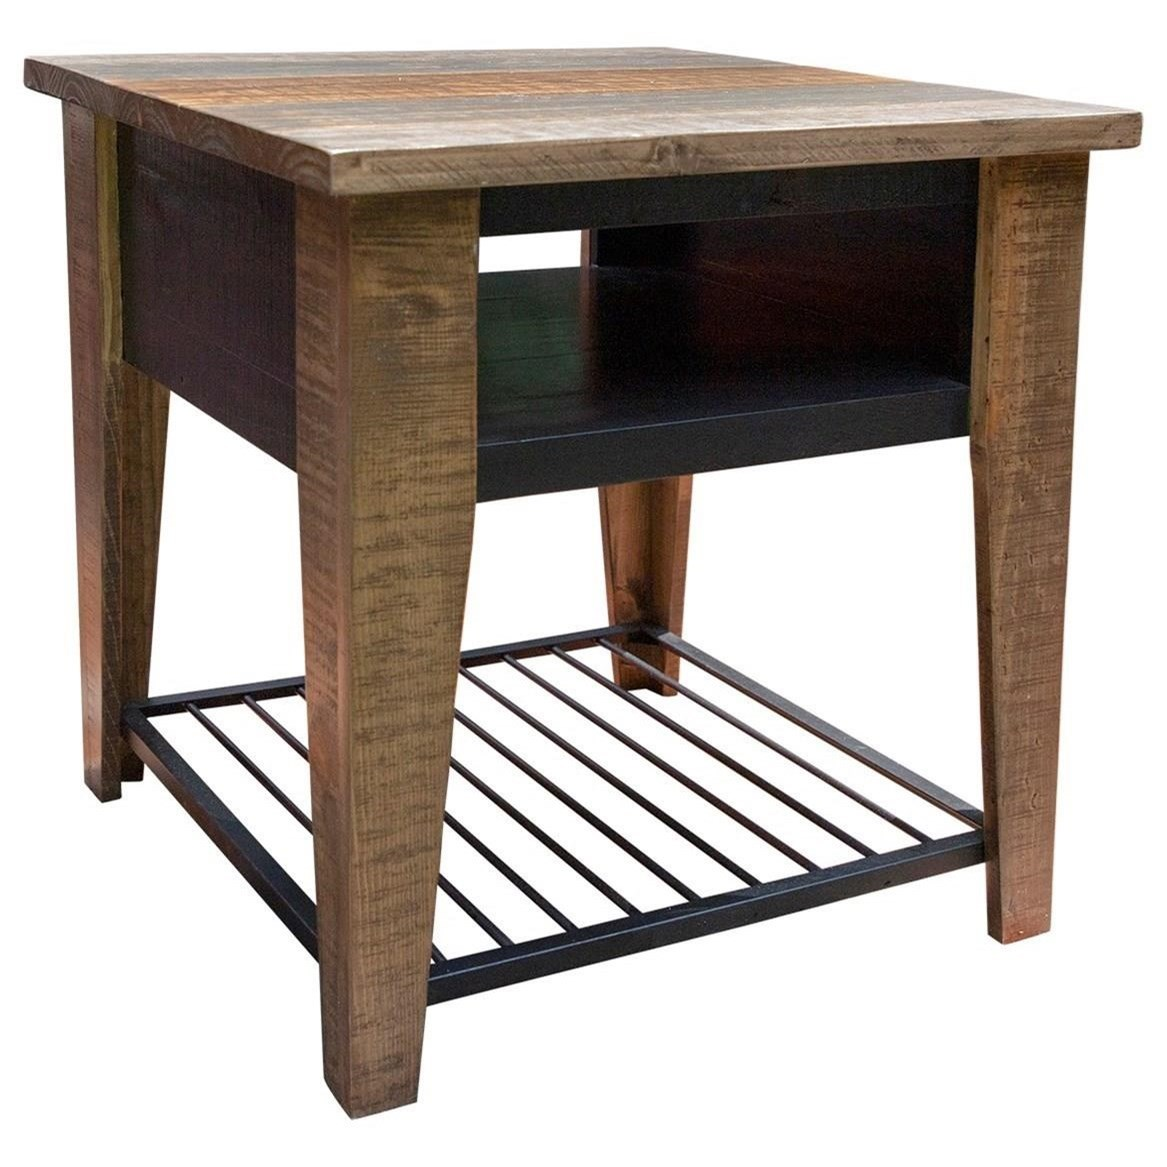 Agave End Table by International Furniture Direct at Houston's Yuma Furniture